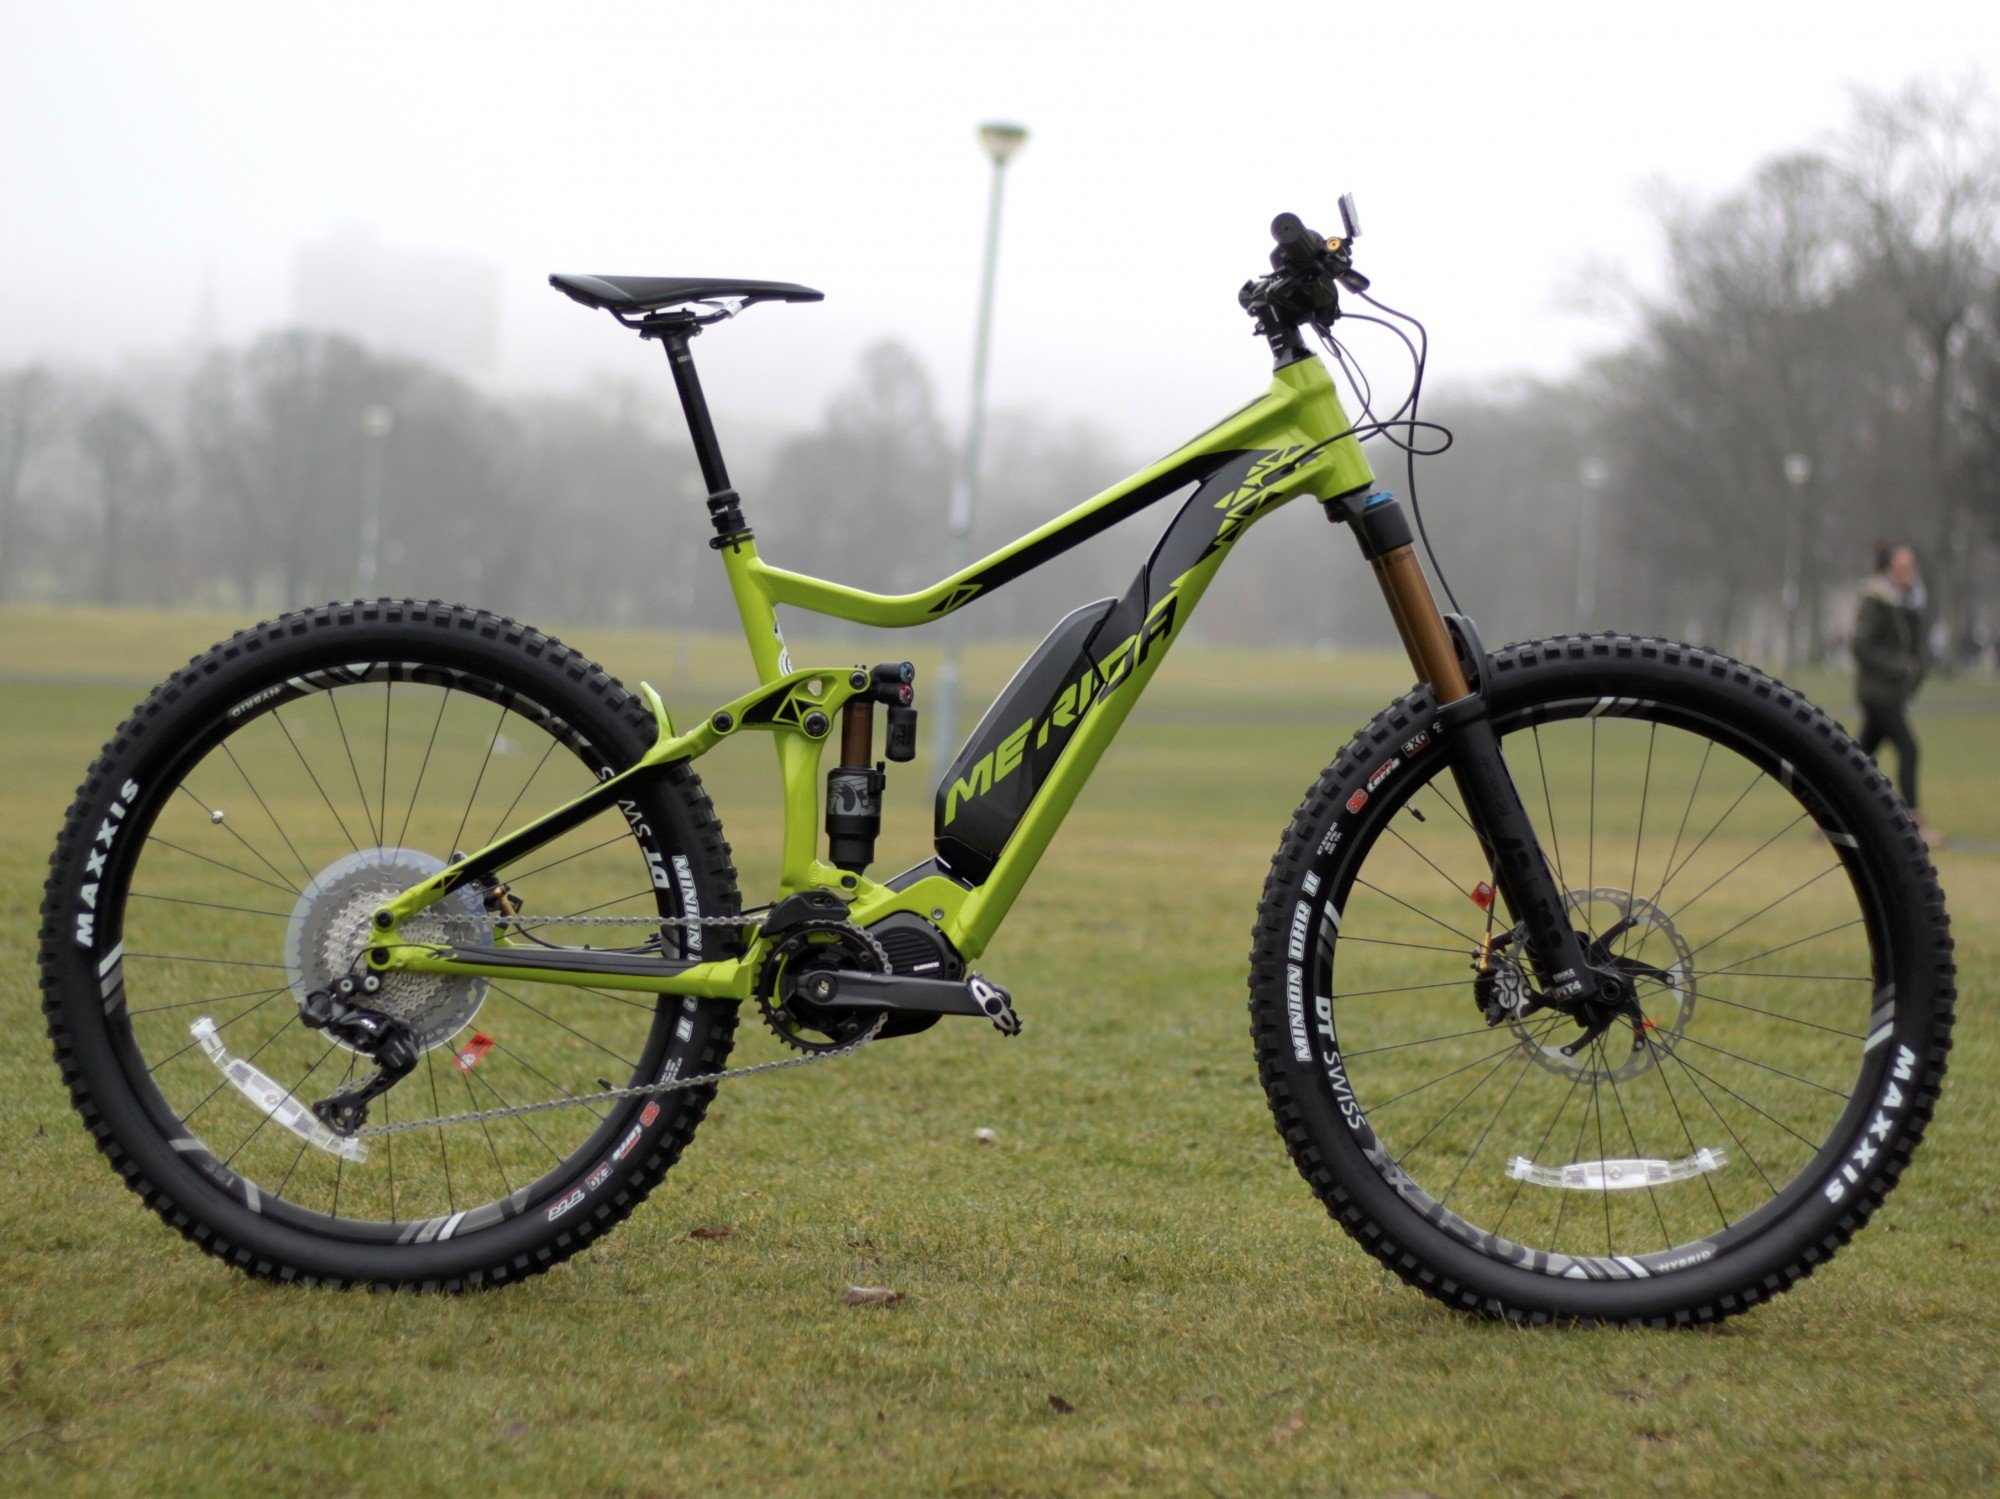 GT Bicycles designs and manufactures road, mountain, and bmx bicycles.